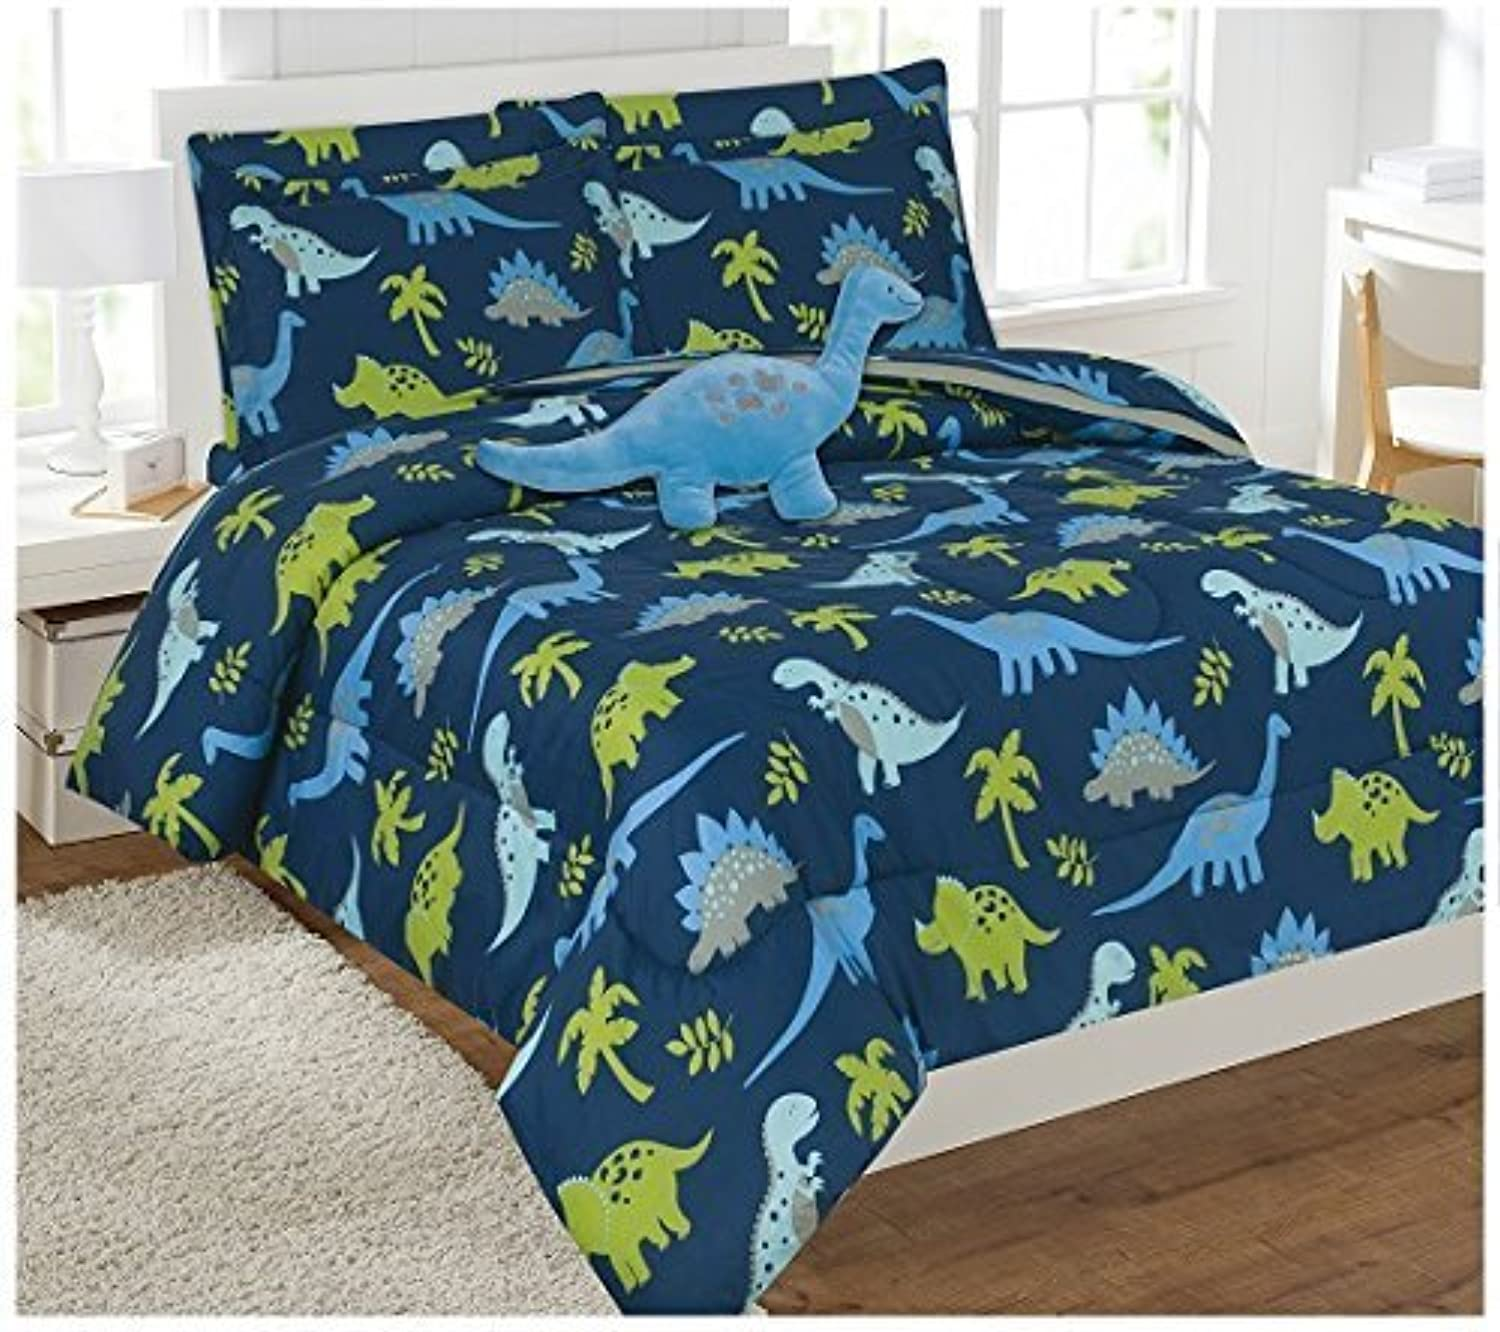 Elegant Home Multicolor Dark bluee Green Dinosaurs Jurassic Park Design 8 Piece Comforter Bedding Set for Boys Kids Bed In a Bag With Sheet Set & Decorative TOY Pillow   Dinosaurs bluee (Full Size)